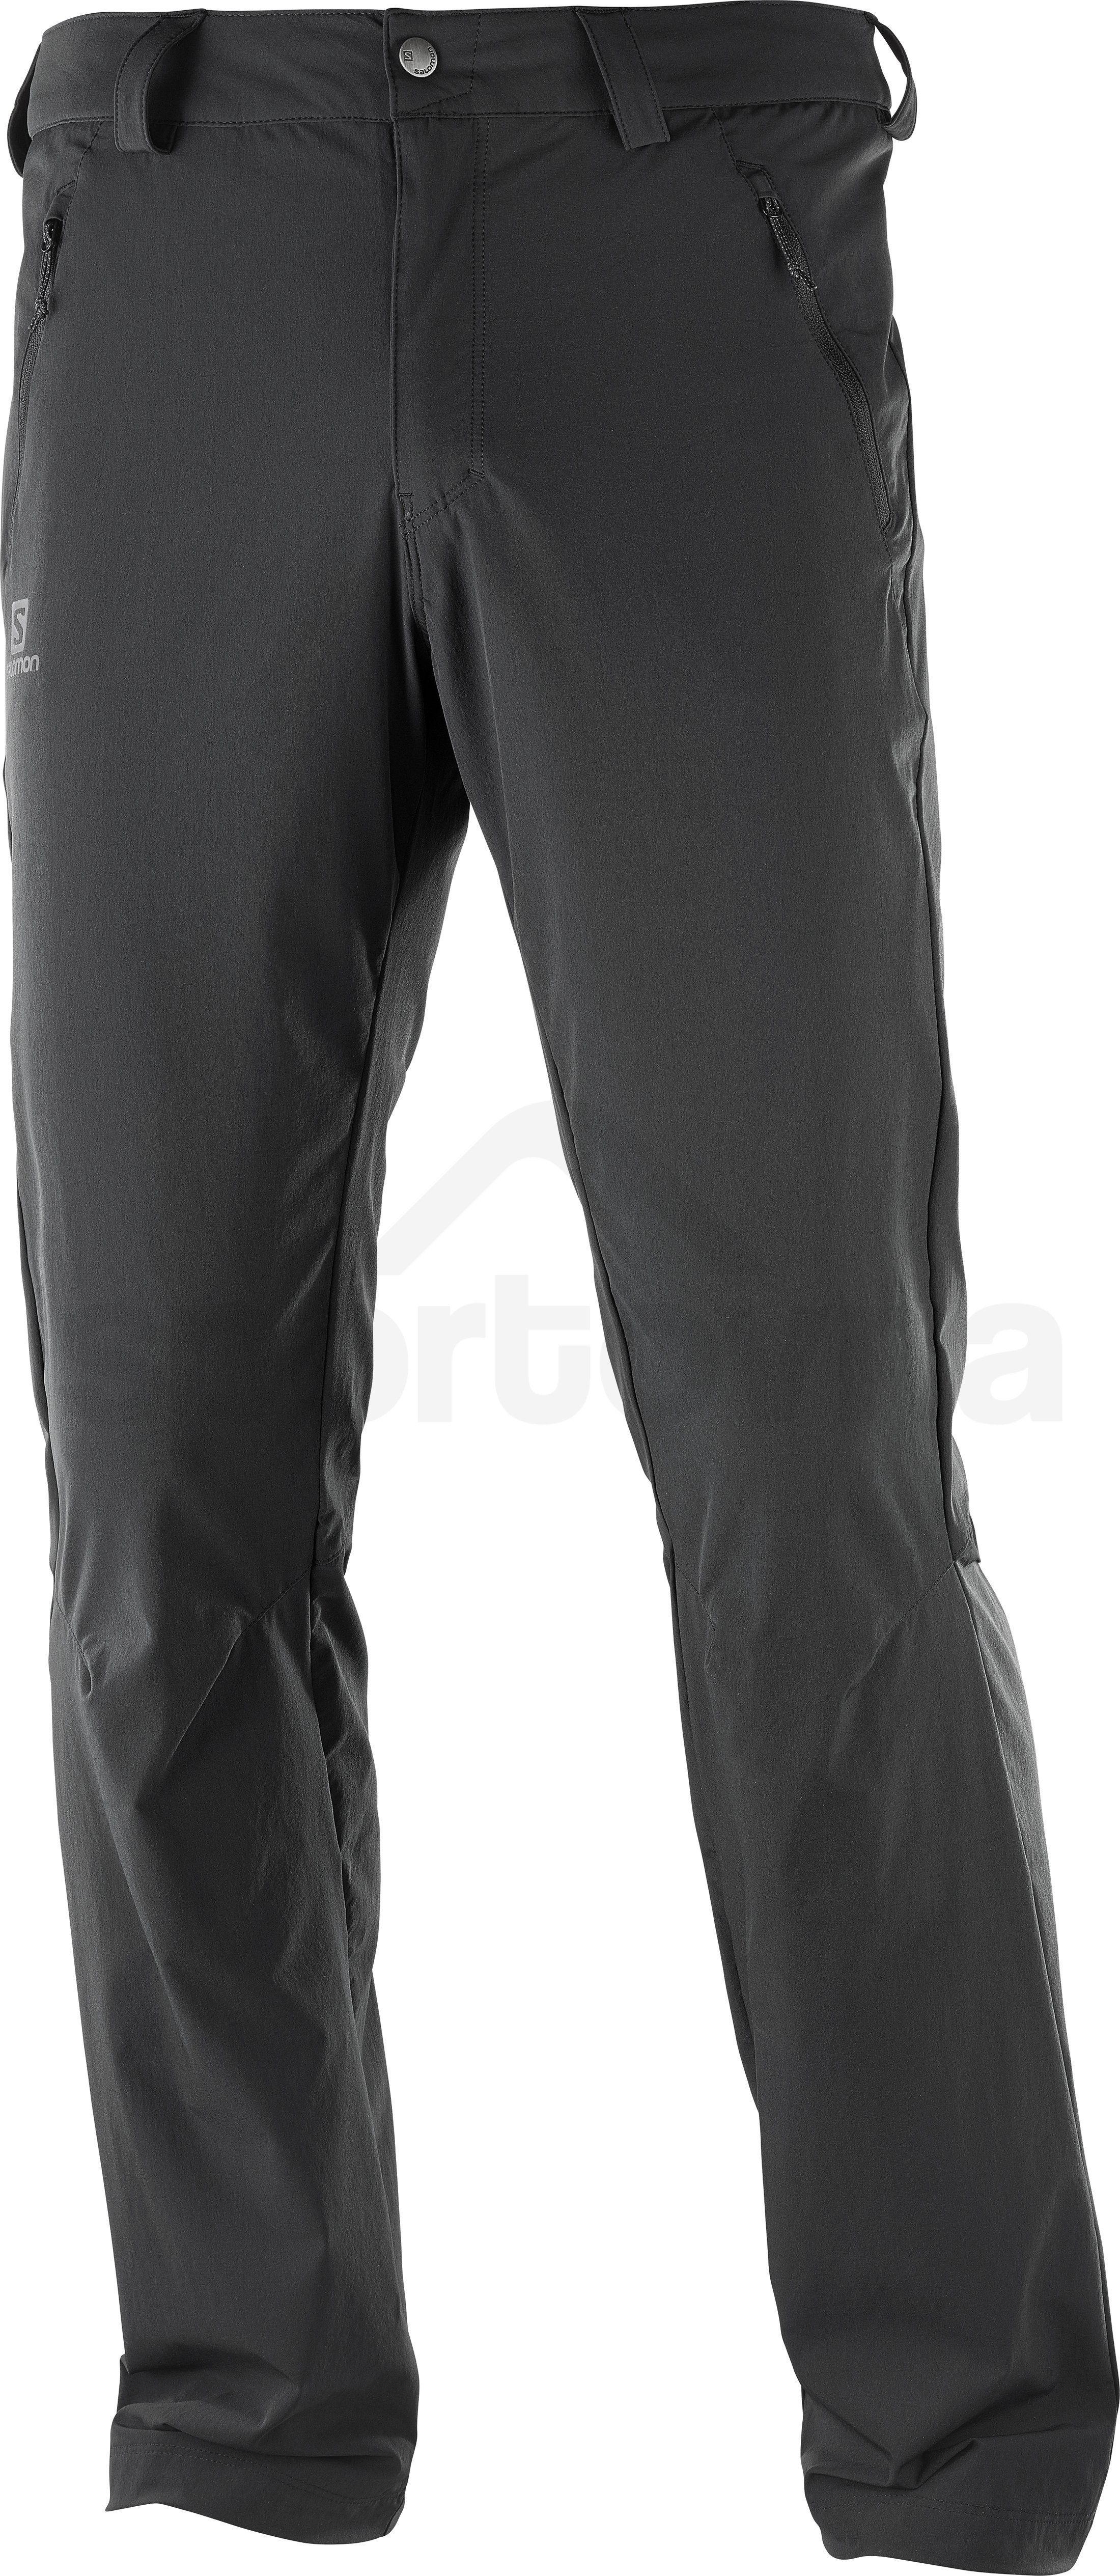 L40218400_0_m_wayfarerltpant_black_outdoor.jpg.originalr